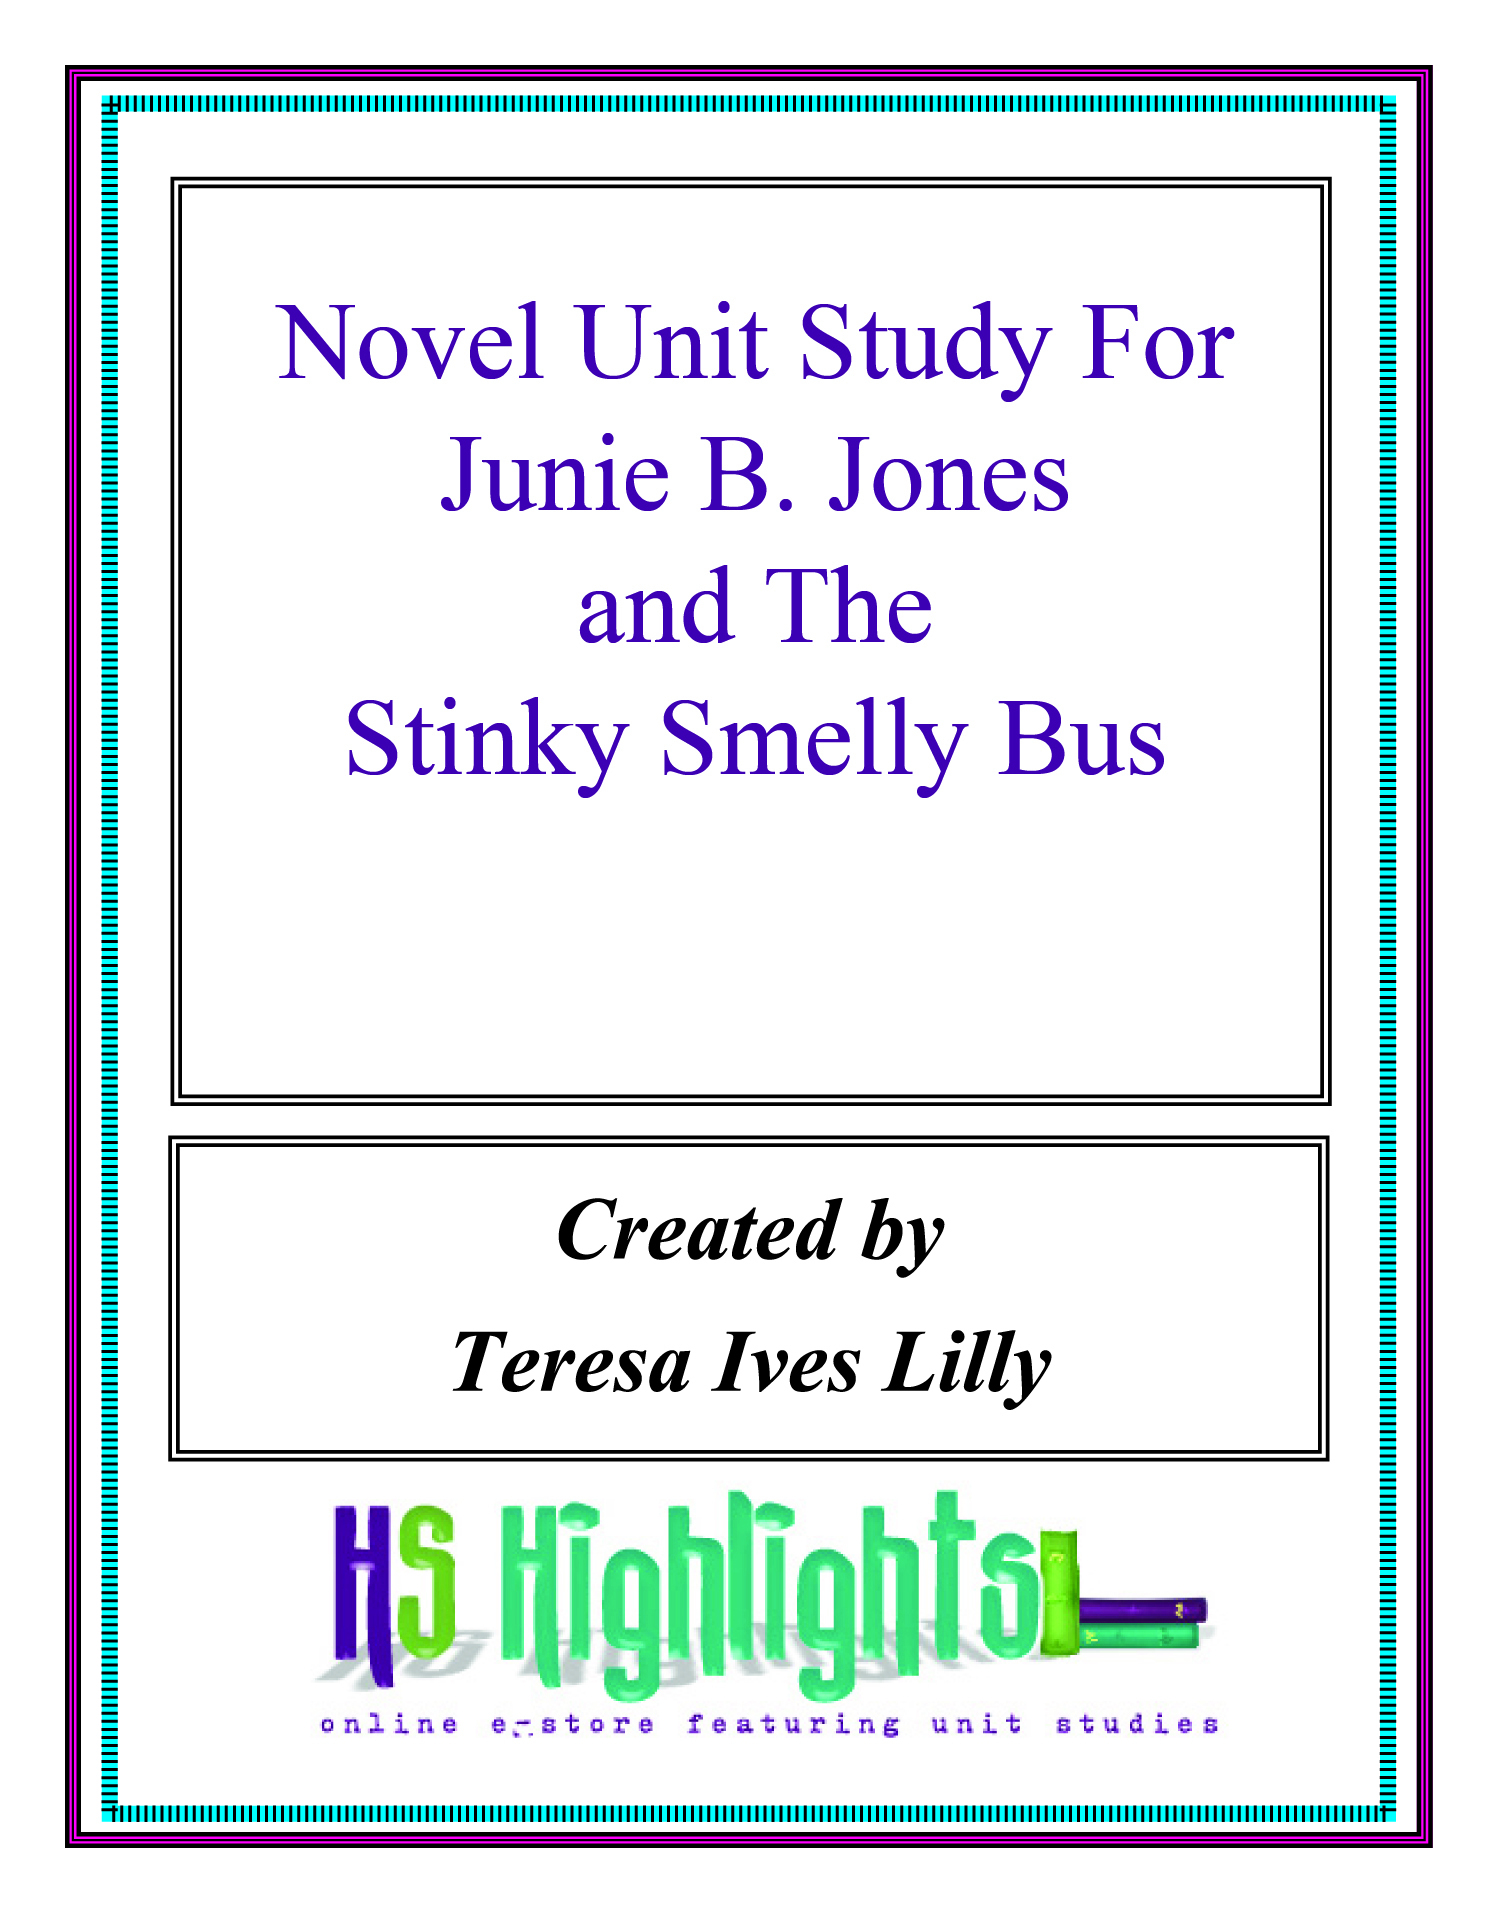 Novel Unit Study For Junie B. Jones and the Stinky Smelly Bus